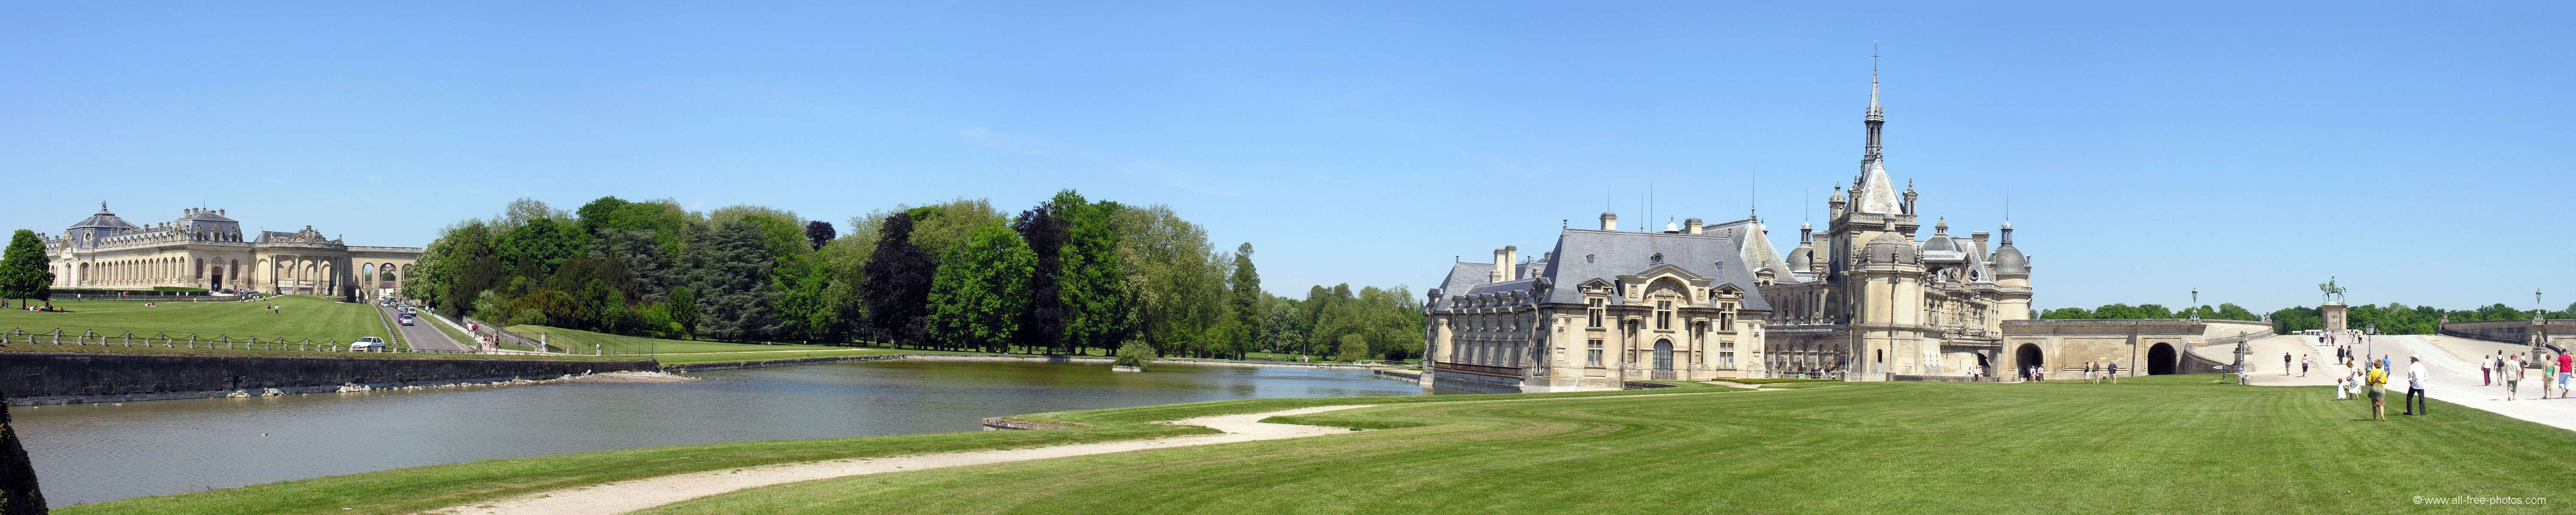 Photo Castle Of Chantilly France